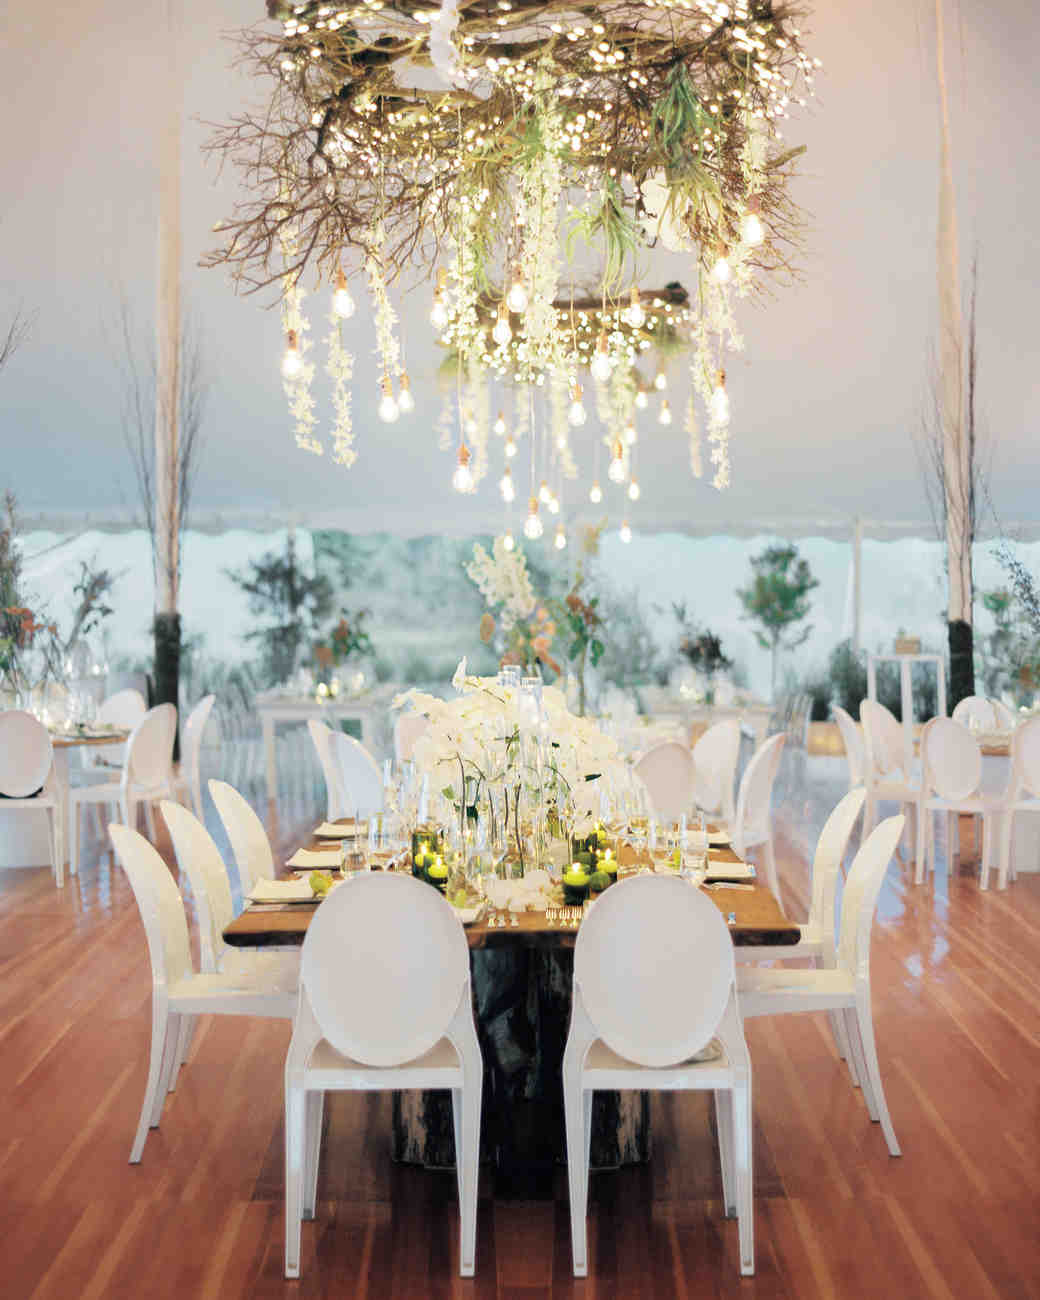 33 tent decorating ideas to upgrade your wedding reception for Chandelier table decorations